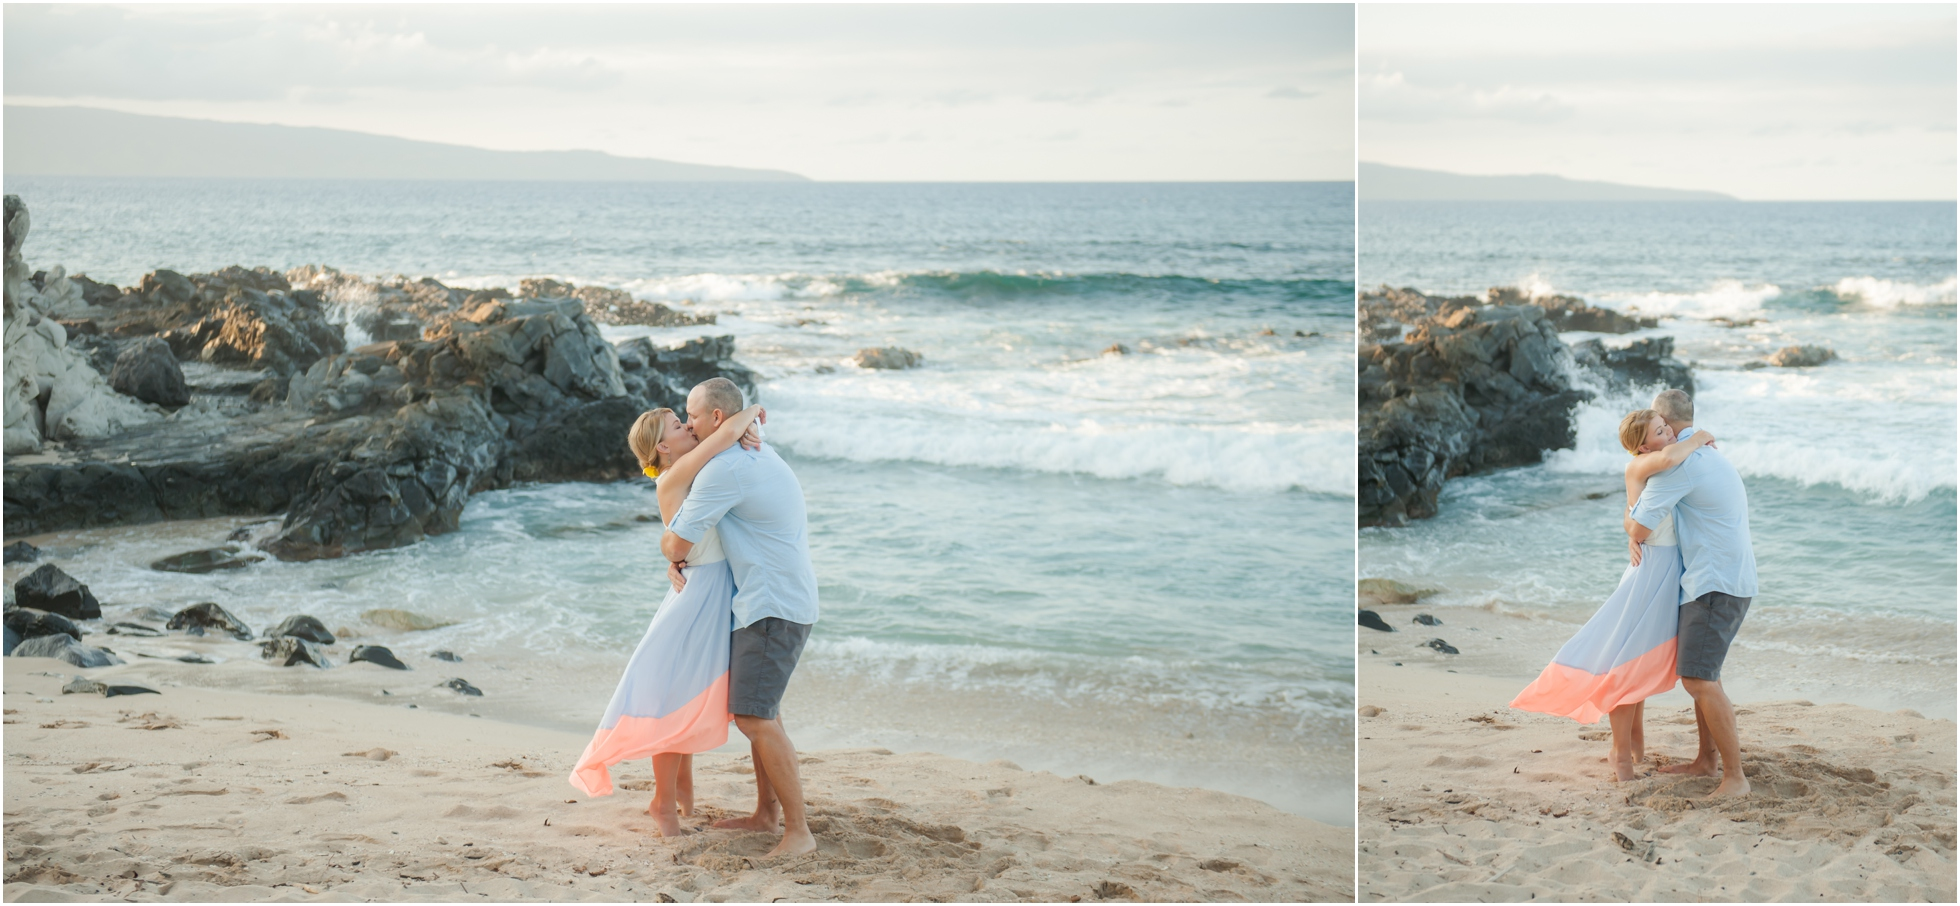 Maui Vow Renewal Photographer